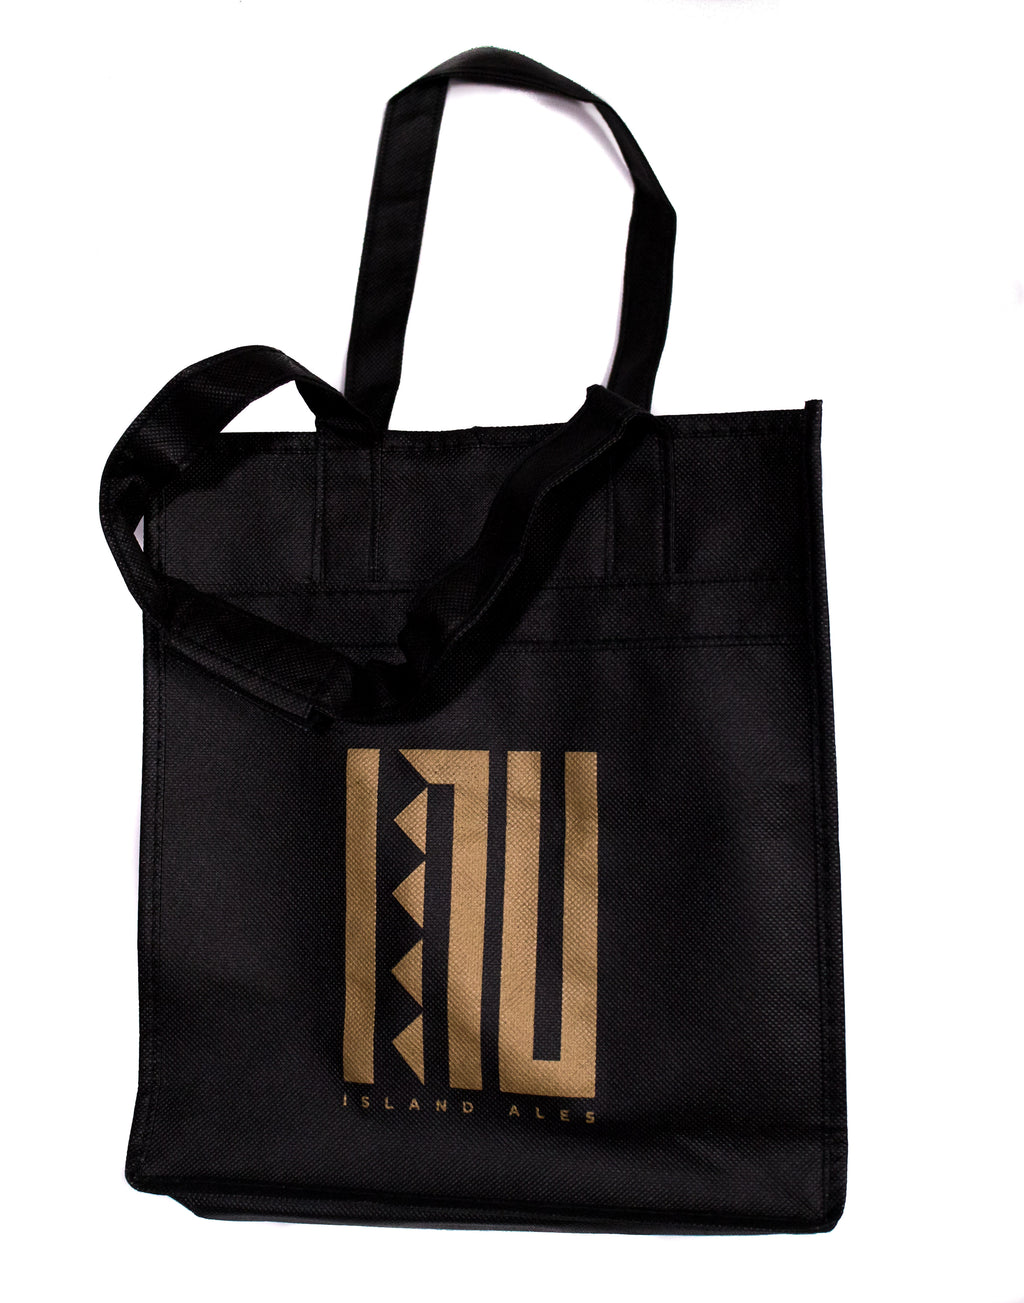 INU 6 BOTTLE TOTE BAG